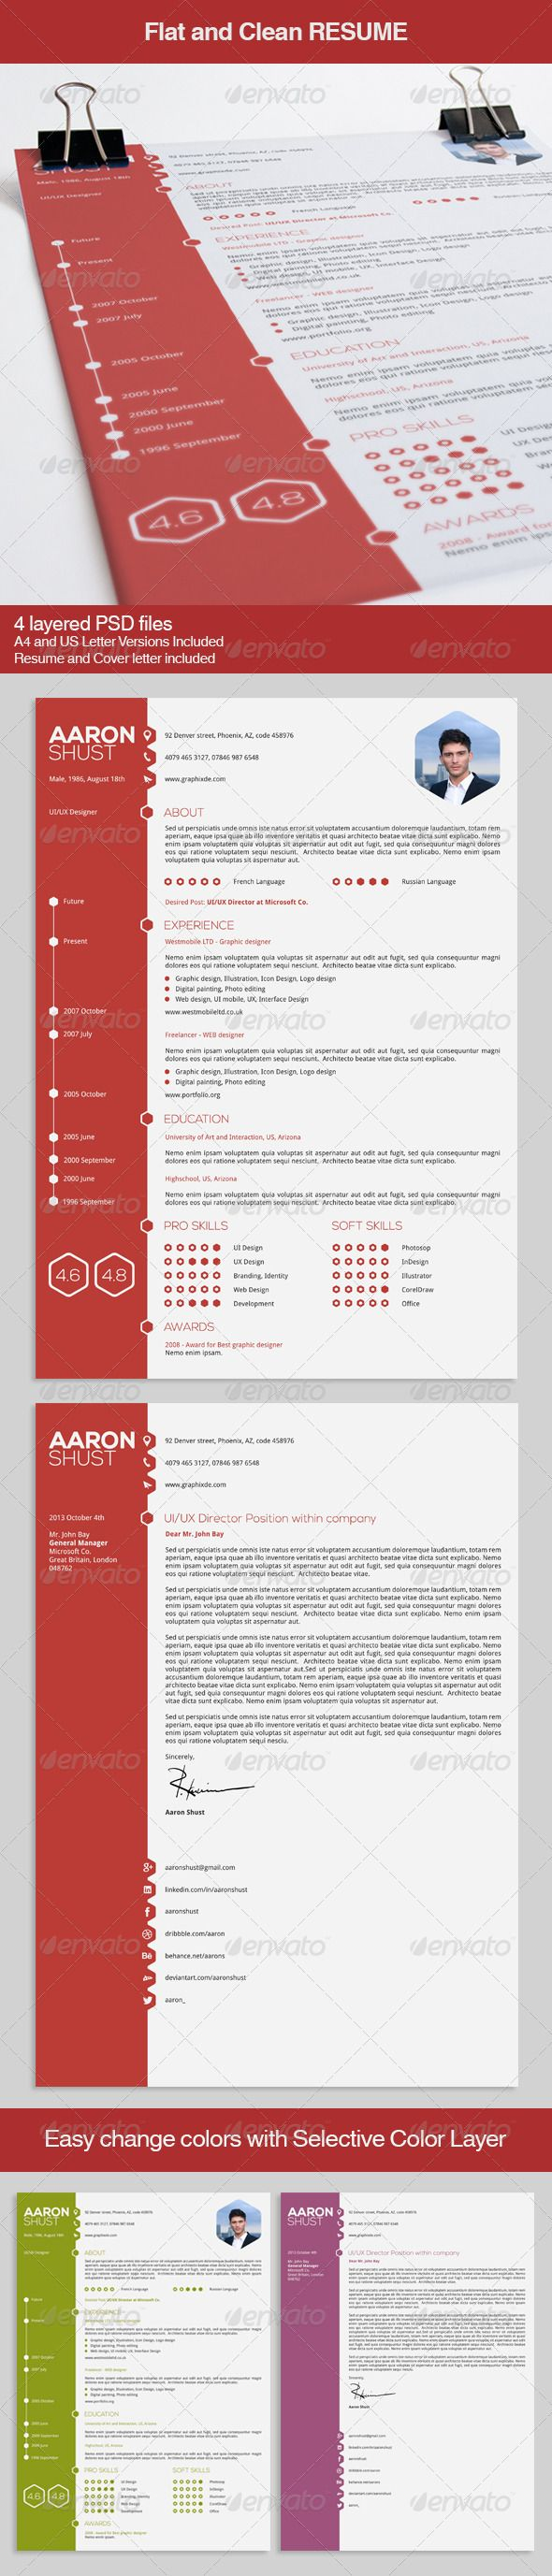 Flat and Clean Resume GraphicRiver Modern and